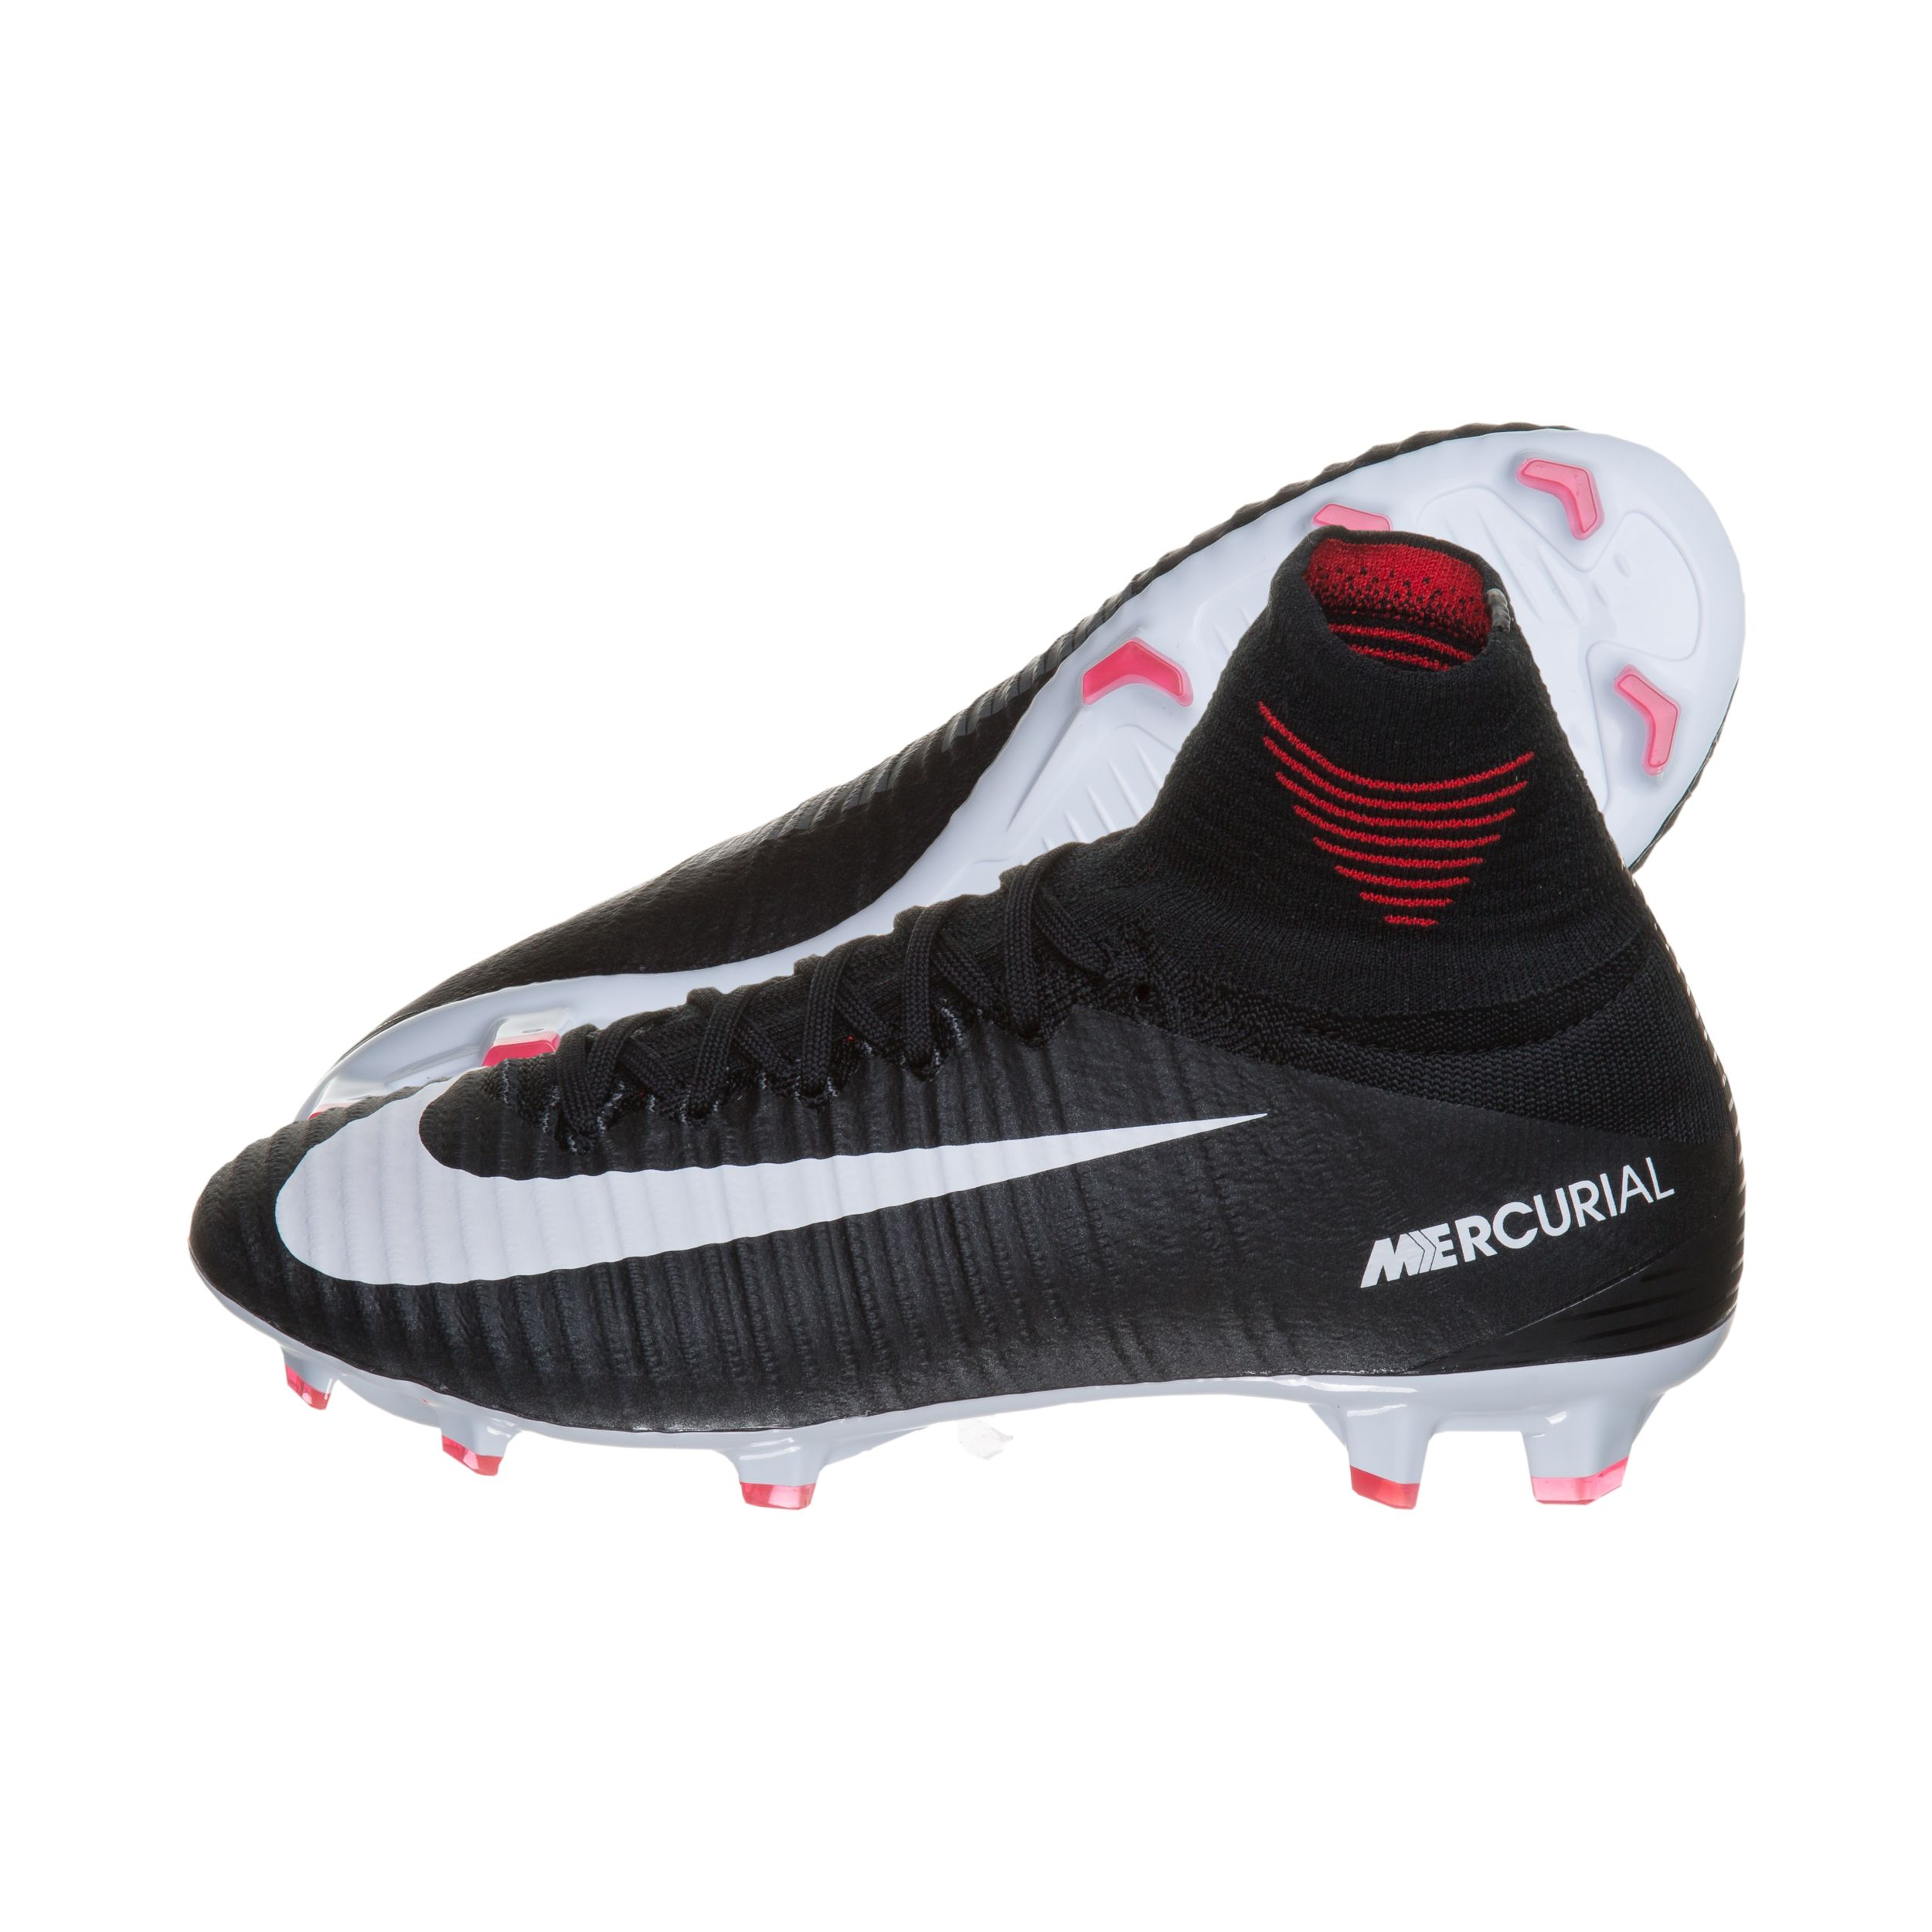 classic styles clearance prices buy best Mercurial Superfly V DF FG Kinder